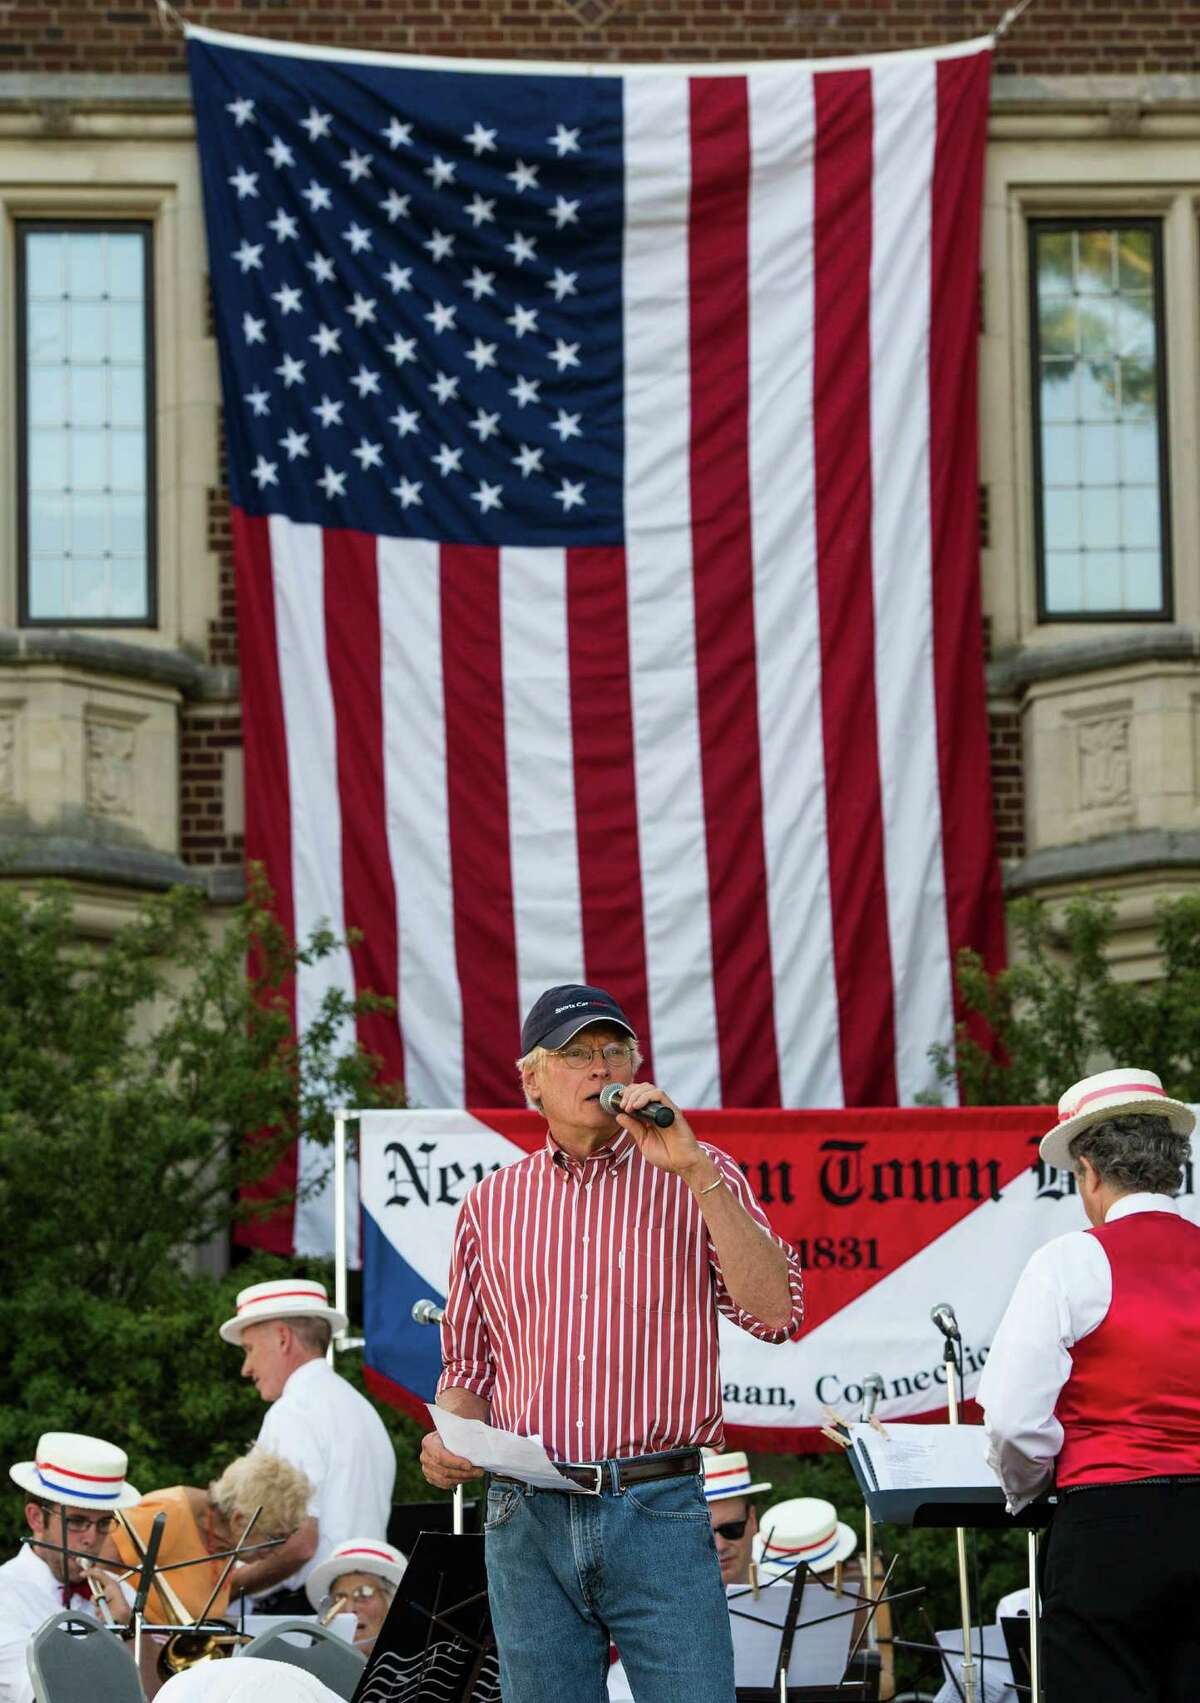 Peter Bush the MC at the annual Family Fourth event held at Waveny Park, New Canaan, CT on Saturday, July 5th, 2014.